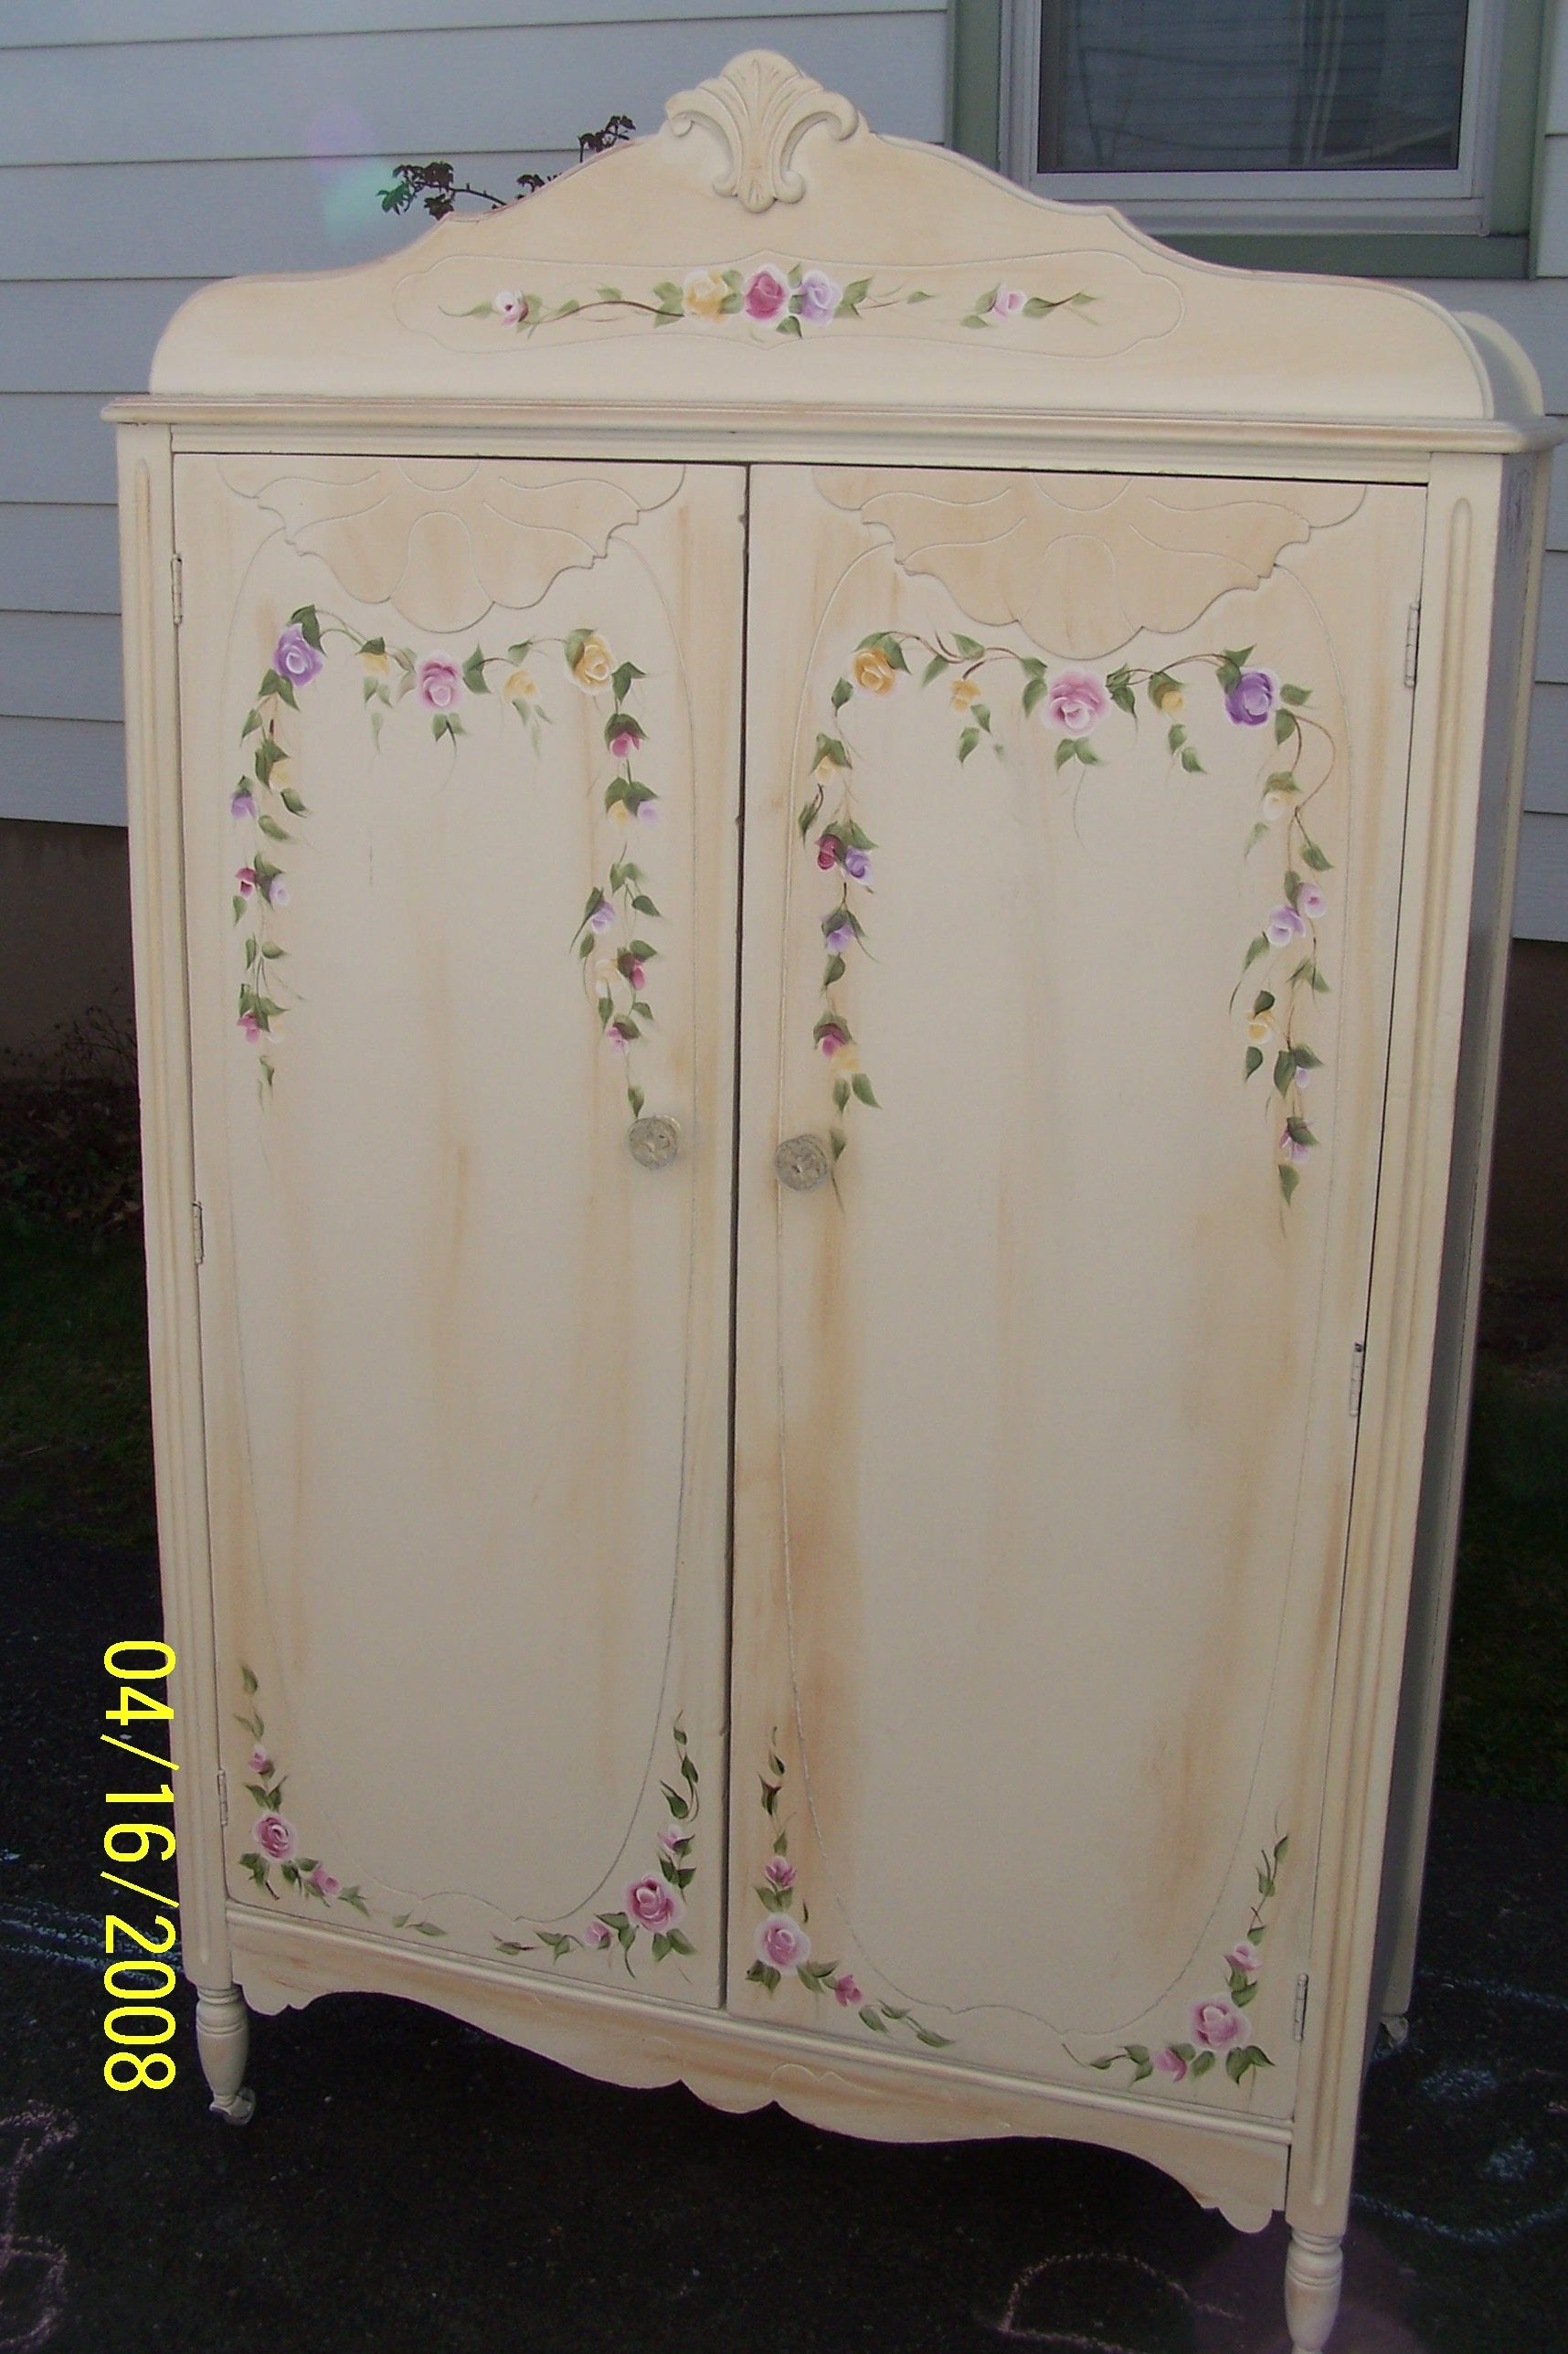 Vintage Painted Shabby Chic Armoire Wardrobe Chifferobe Bedroom Furniture # Shabbychic #vintagefurniture #paintedfurniture #